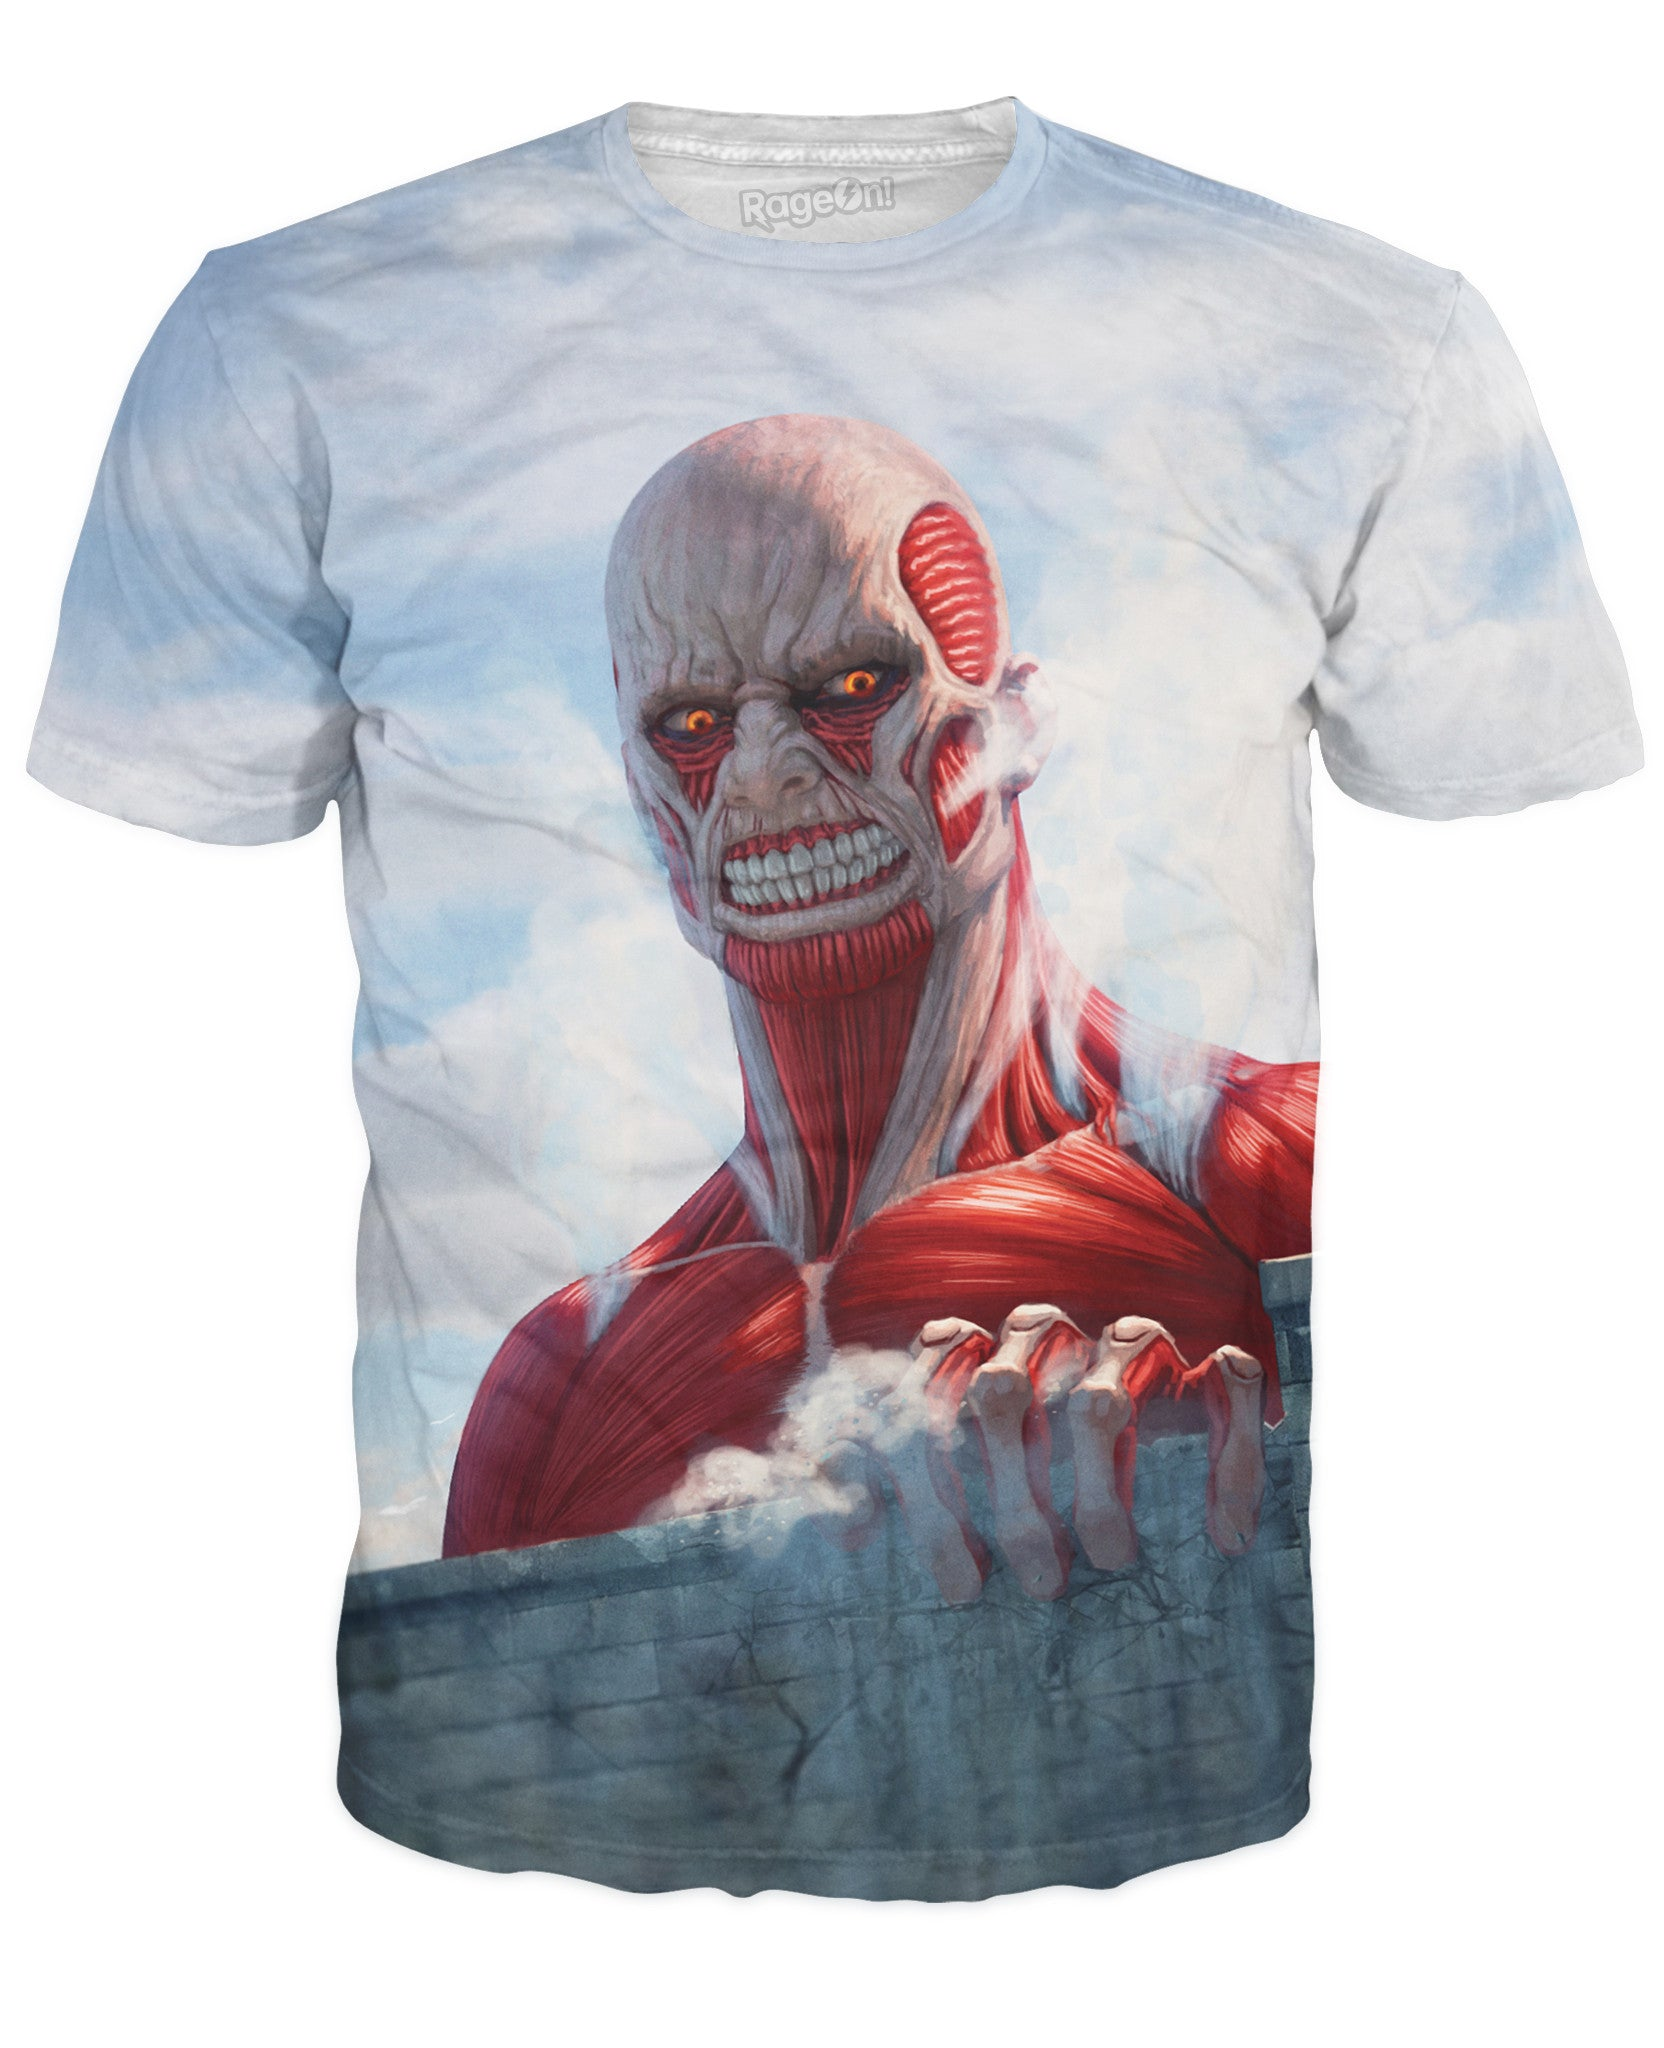 Colossal Titan T-Shirt